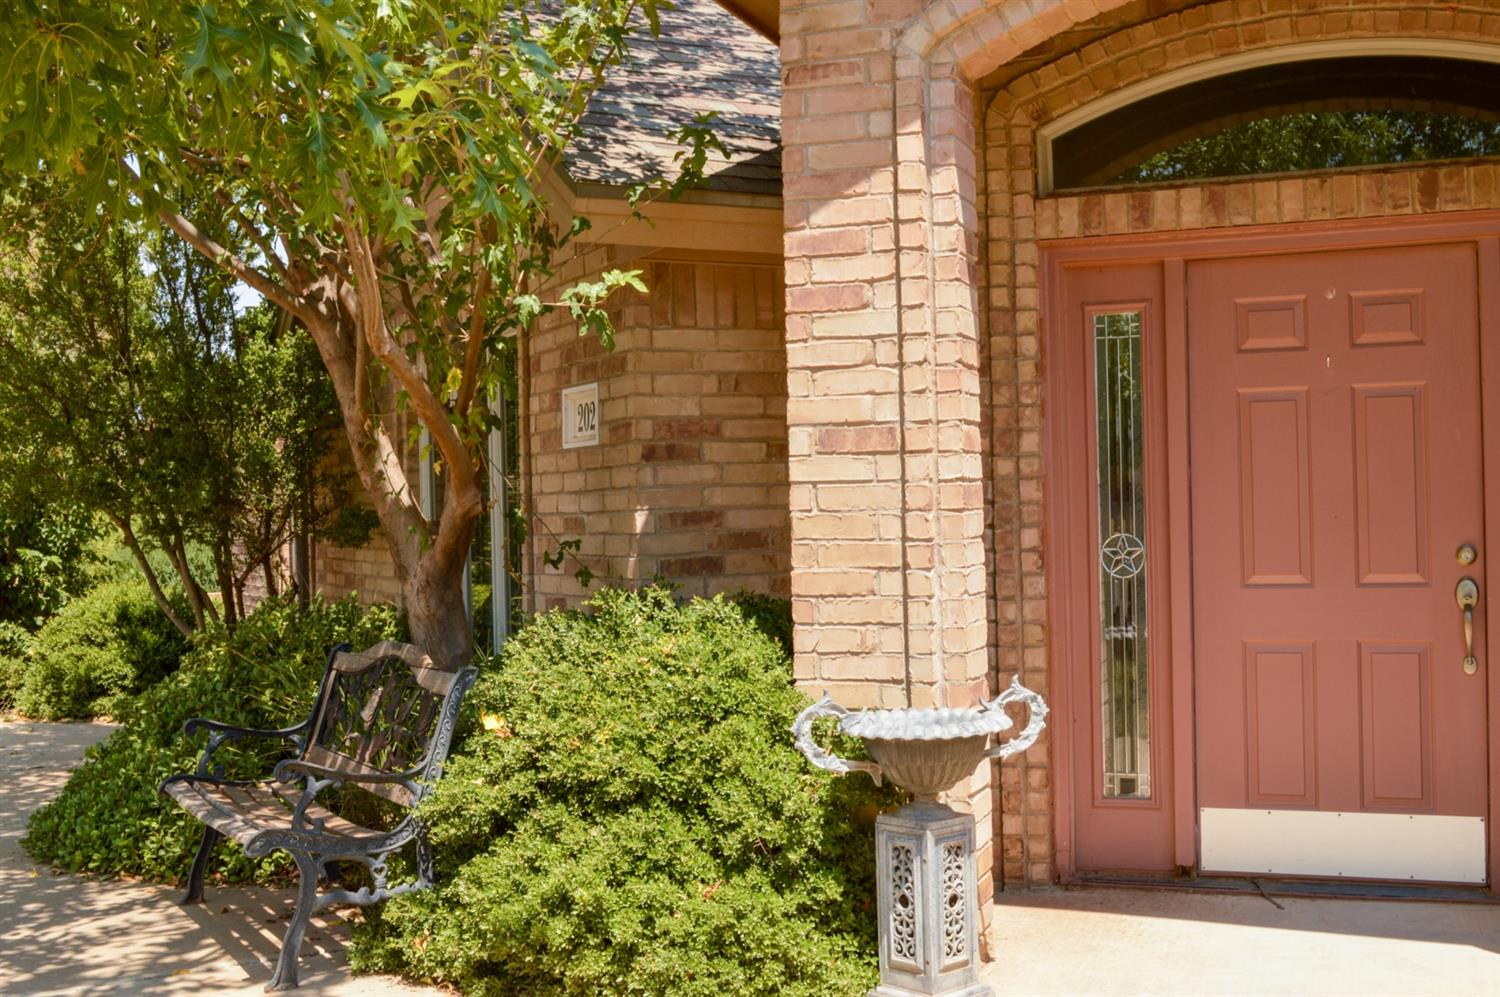 ***PRICE REDUCTION***  Beautiful 3 bedroom 3 bathroom garden home located in the Levelland Country Club neighborhood. This home showcases a master bedroom suite and two additional bedrooms, each with their own bathroom. Master suite boasts a beautiful and luxurious jacuzzi tub, double sinks, an oversized vanity, and generously sized walk-in closet. Elegant and sleek kitchen with an island, breakfast bar, and a butlers pantry that separates the kitchen and dining room. Plenty of storage in the many cabinets and large pantry. Raised ceilings are featured throughout the home allowing for an appealing sense of space. The versatile plantation shutters create a comforting ambience. 2 car rear entry garage and small storage shed sit on the back of the property. Great location; within walking distance of South Plains College and Covenant Hospital Levelland.